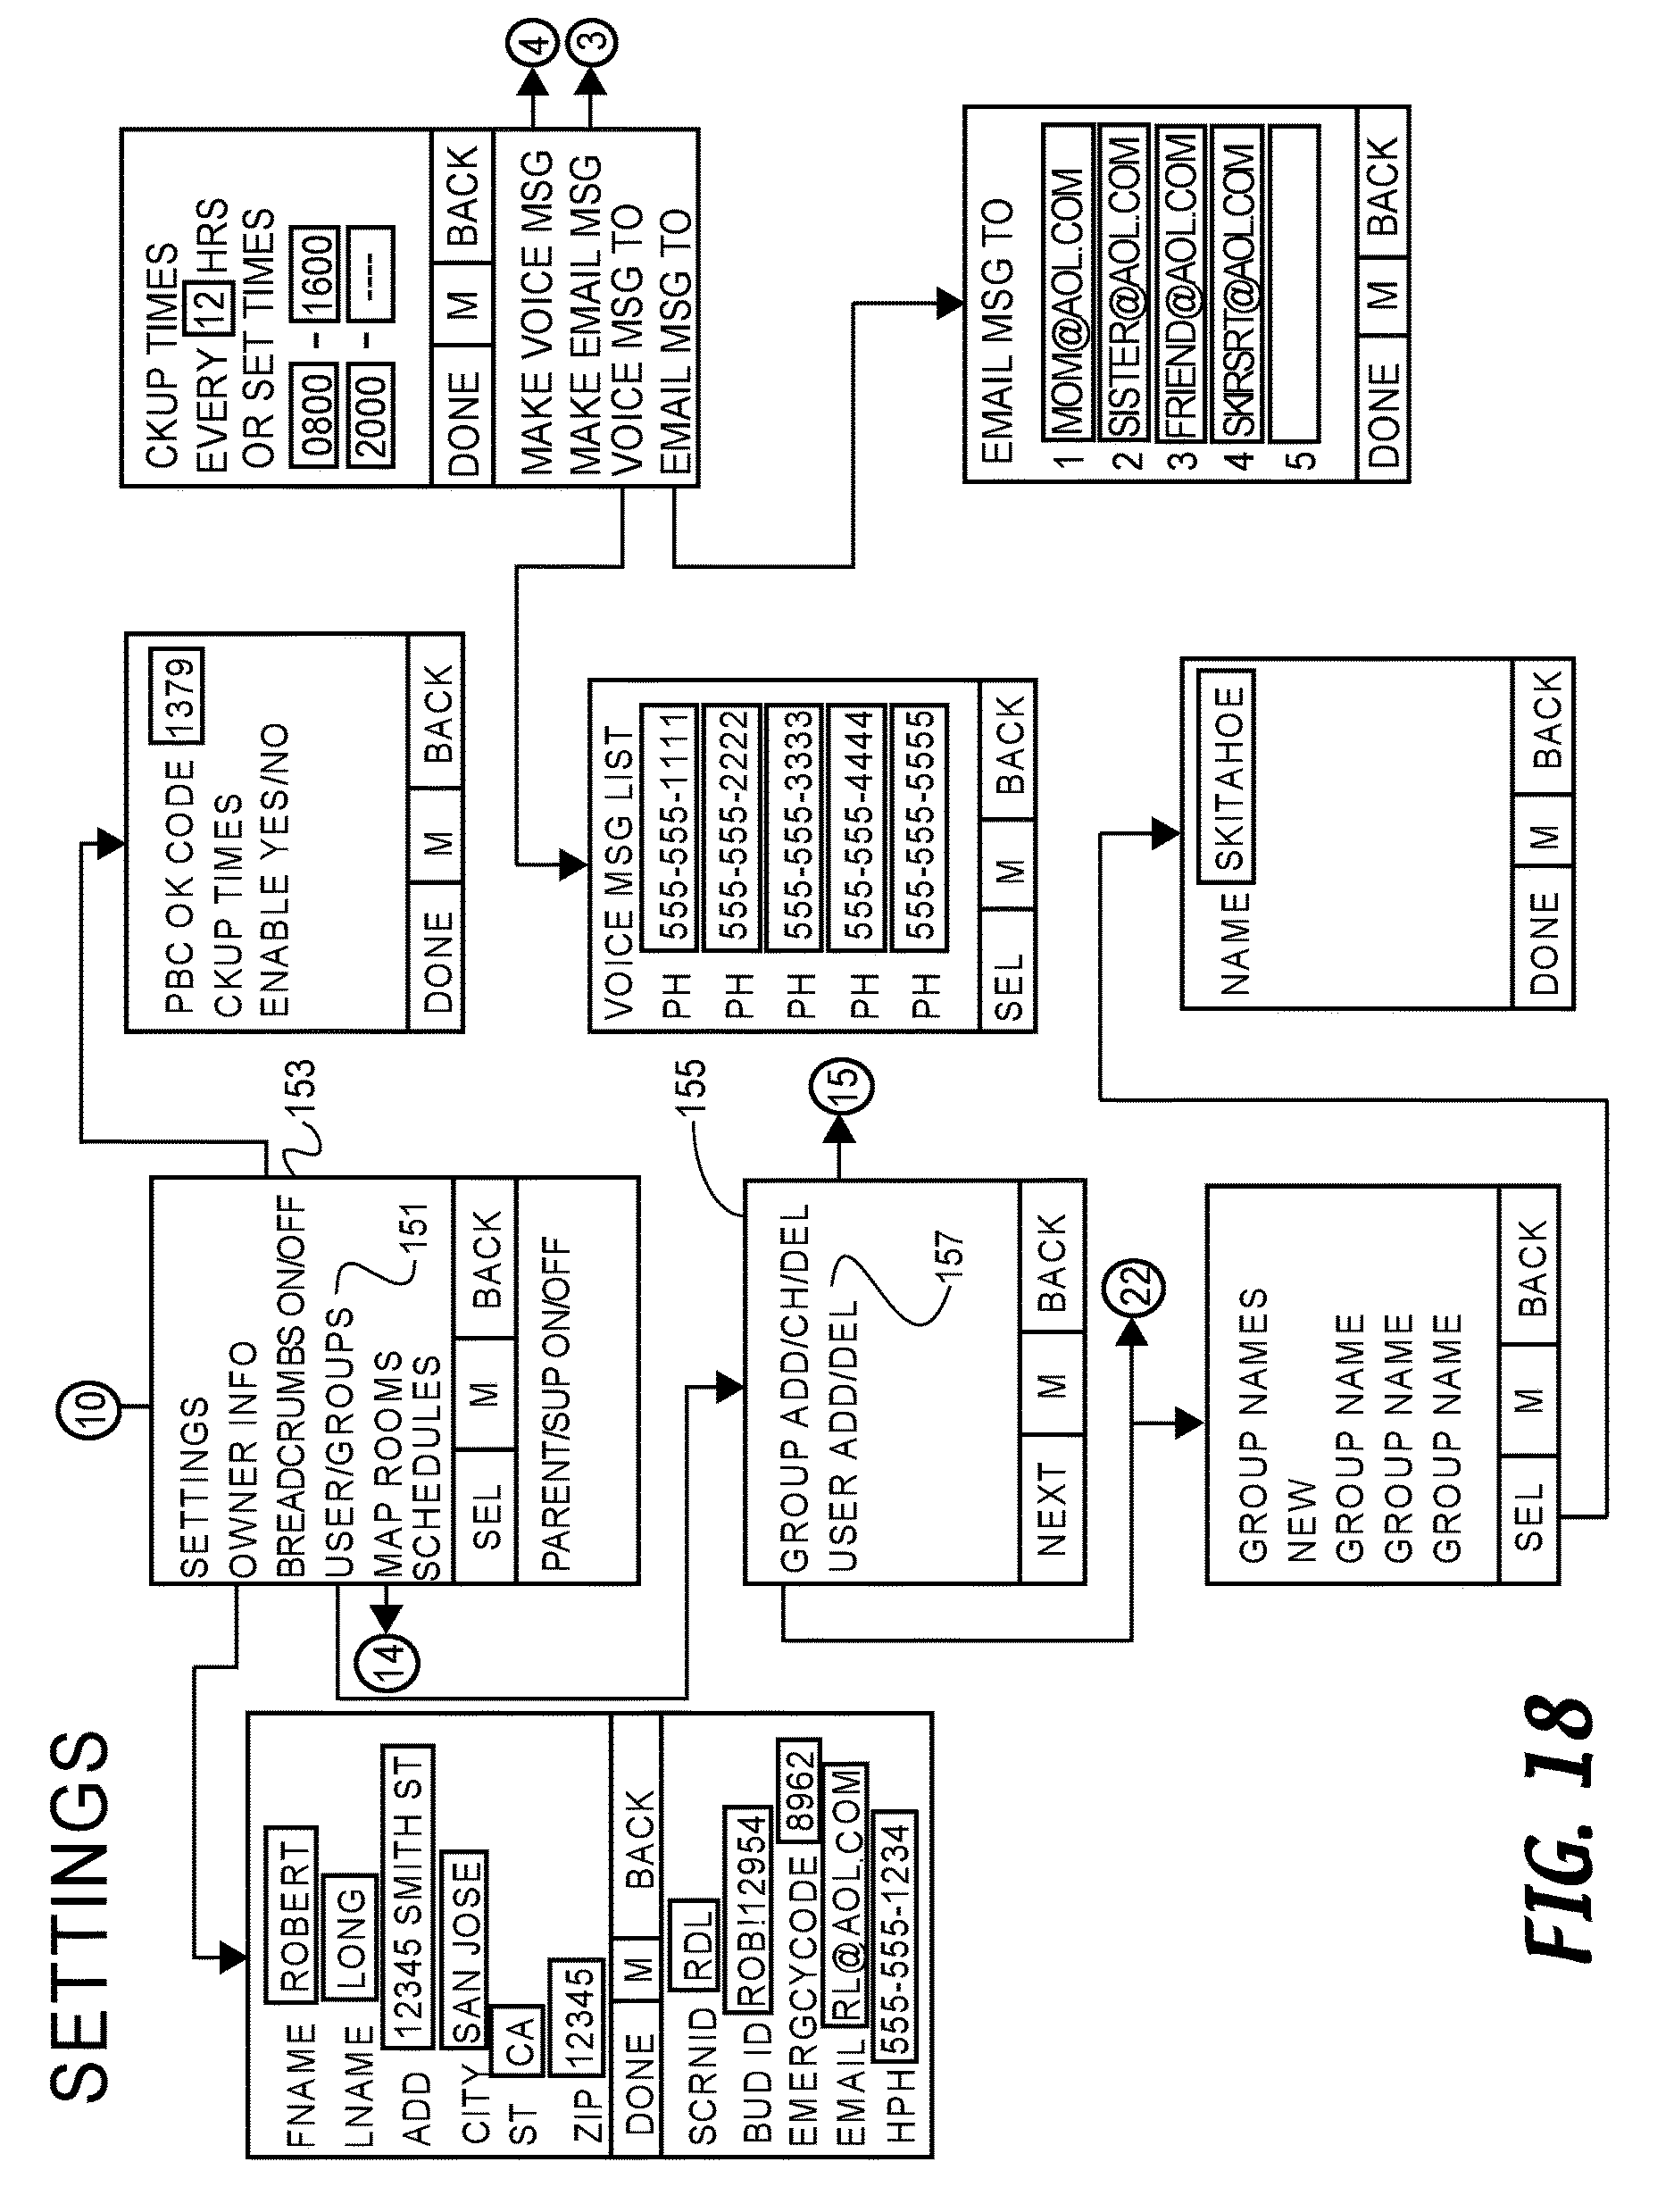 Us9654921b1 Techniques For Sharing Position Data Between First And Nissan Pathfinder Air Fuel Ratio Circuit Slow Response Bank 2 Sensor Second Devices Google Patents